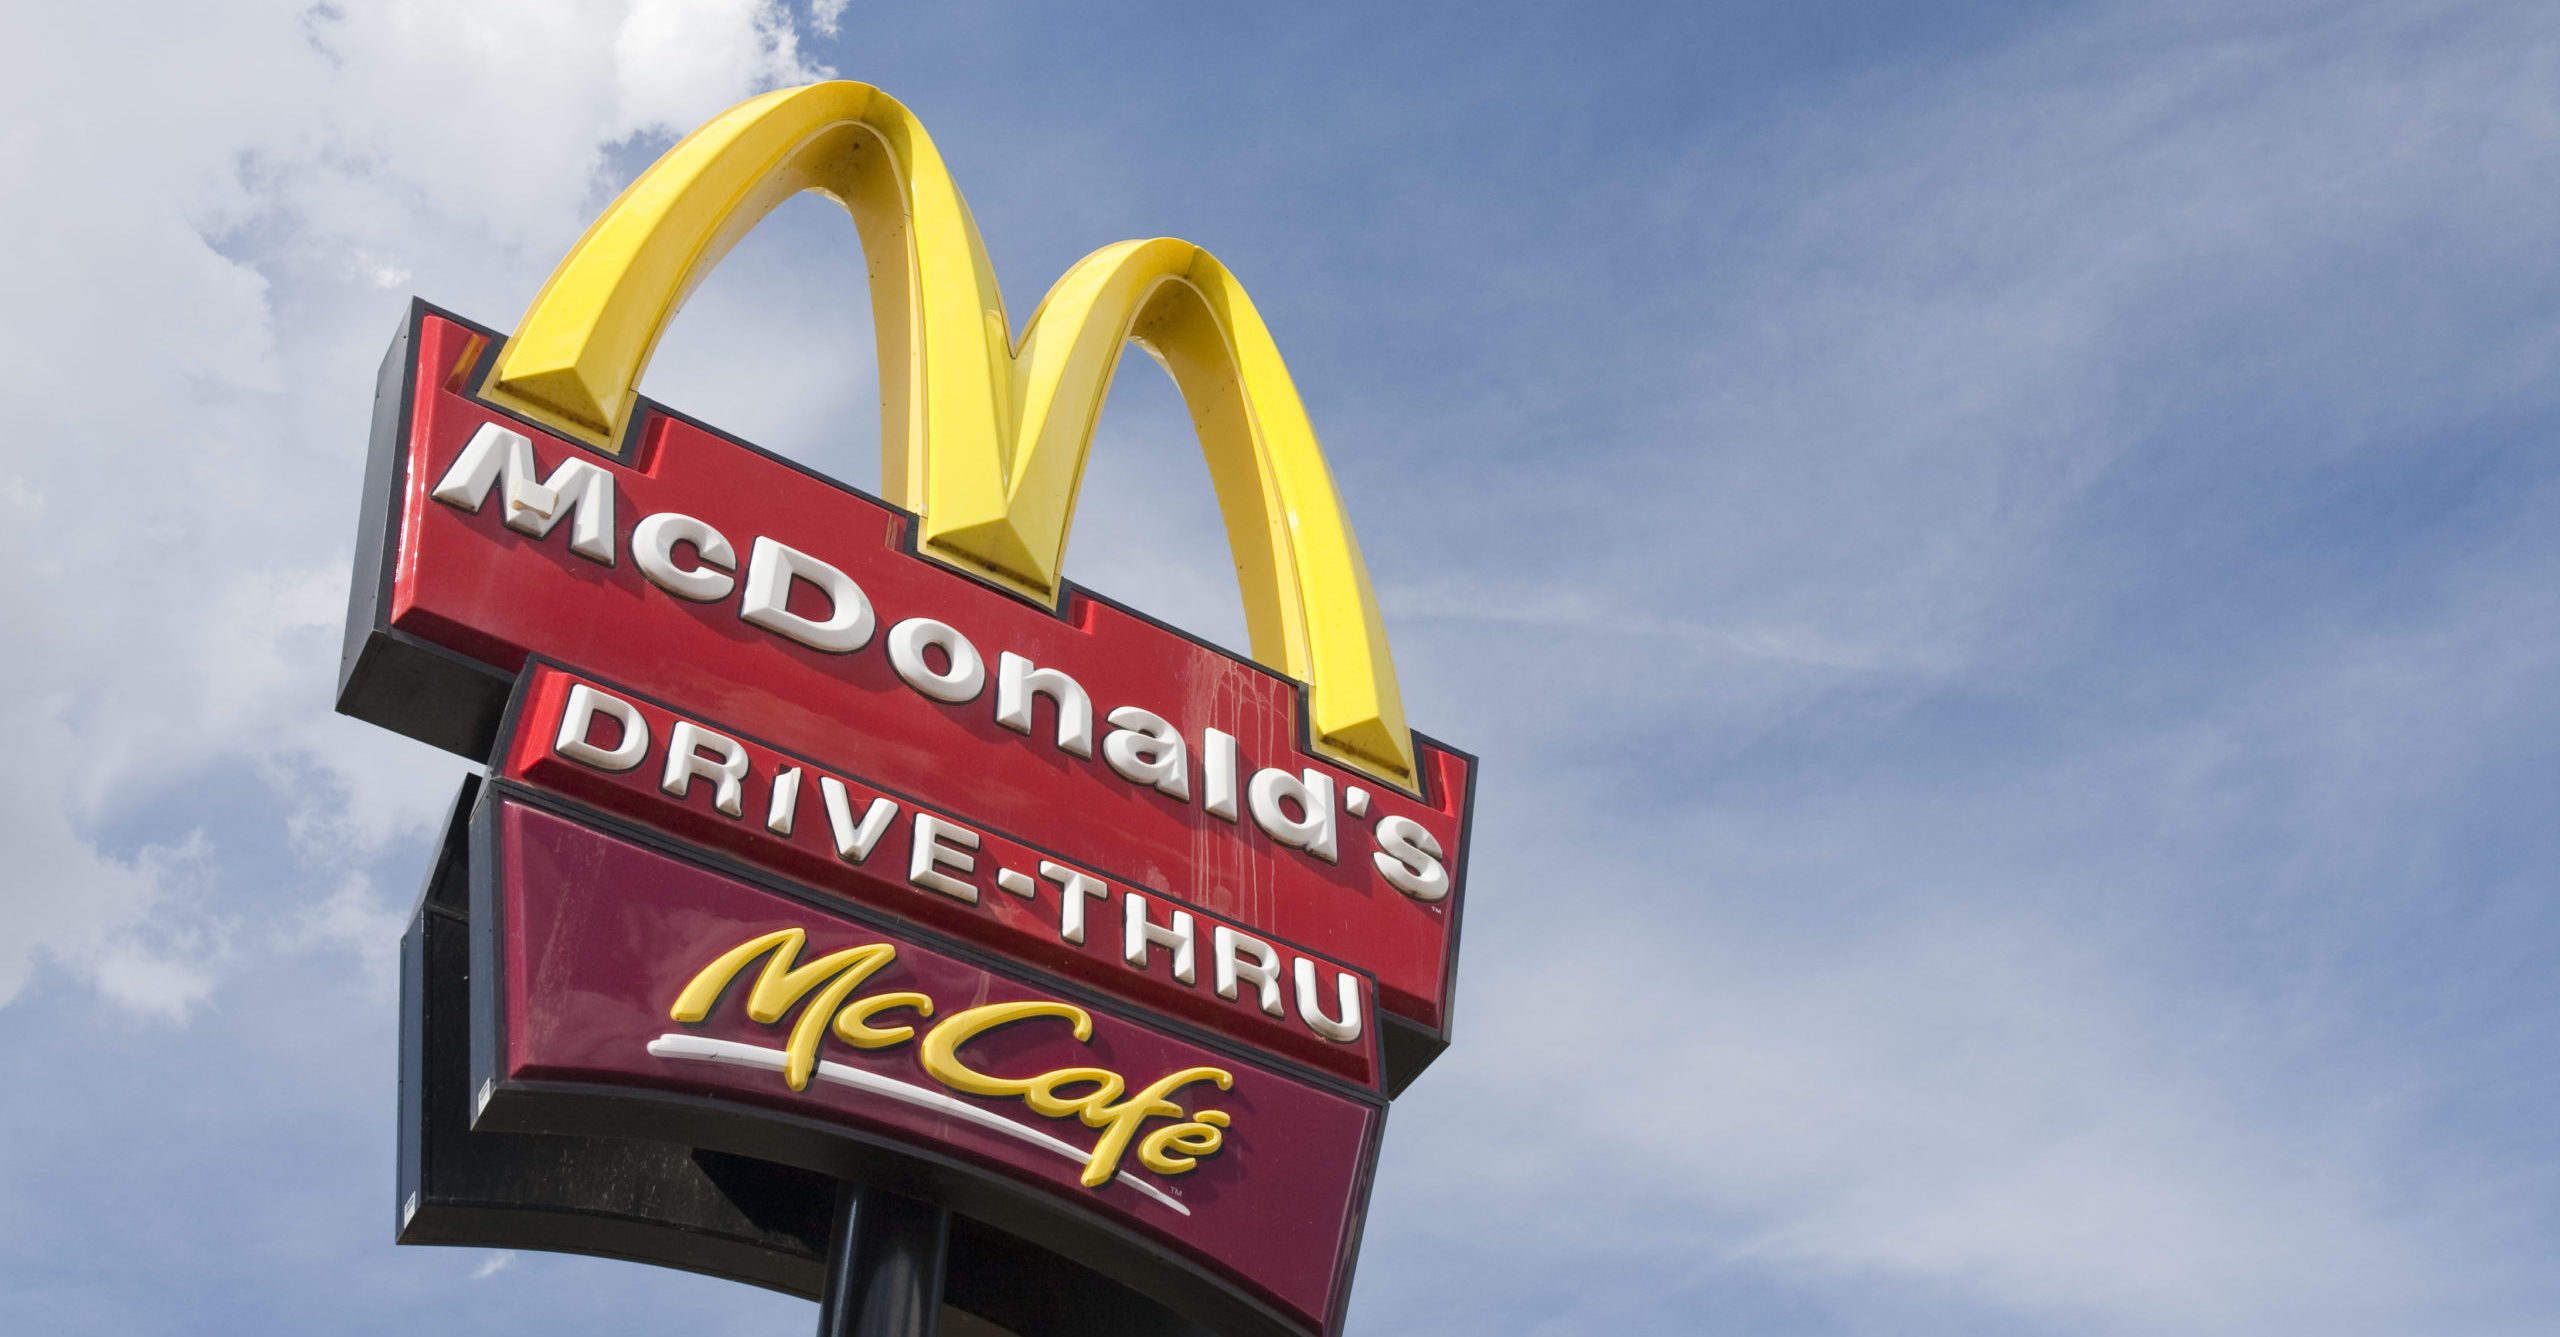 McDonald's gets the go ahead to reopen all UK drive-thrus as soon as possible